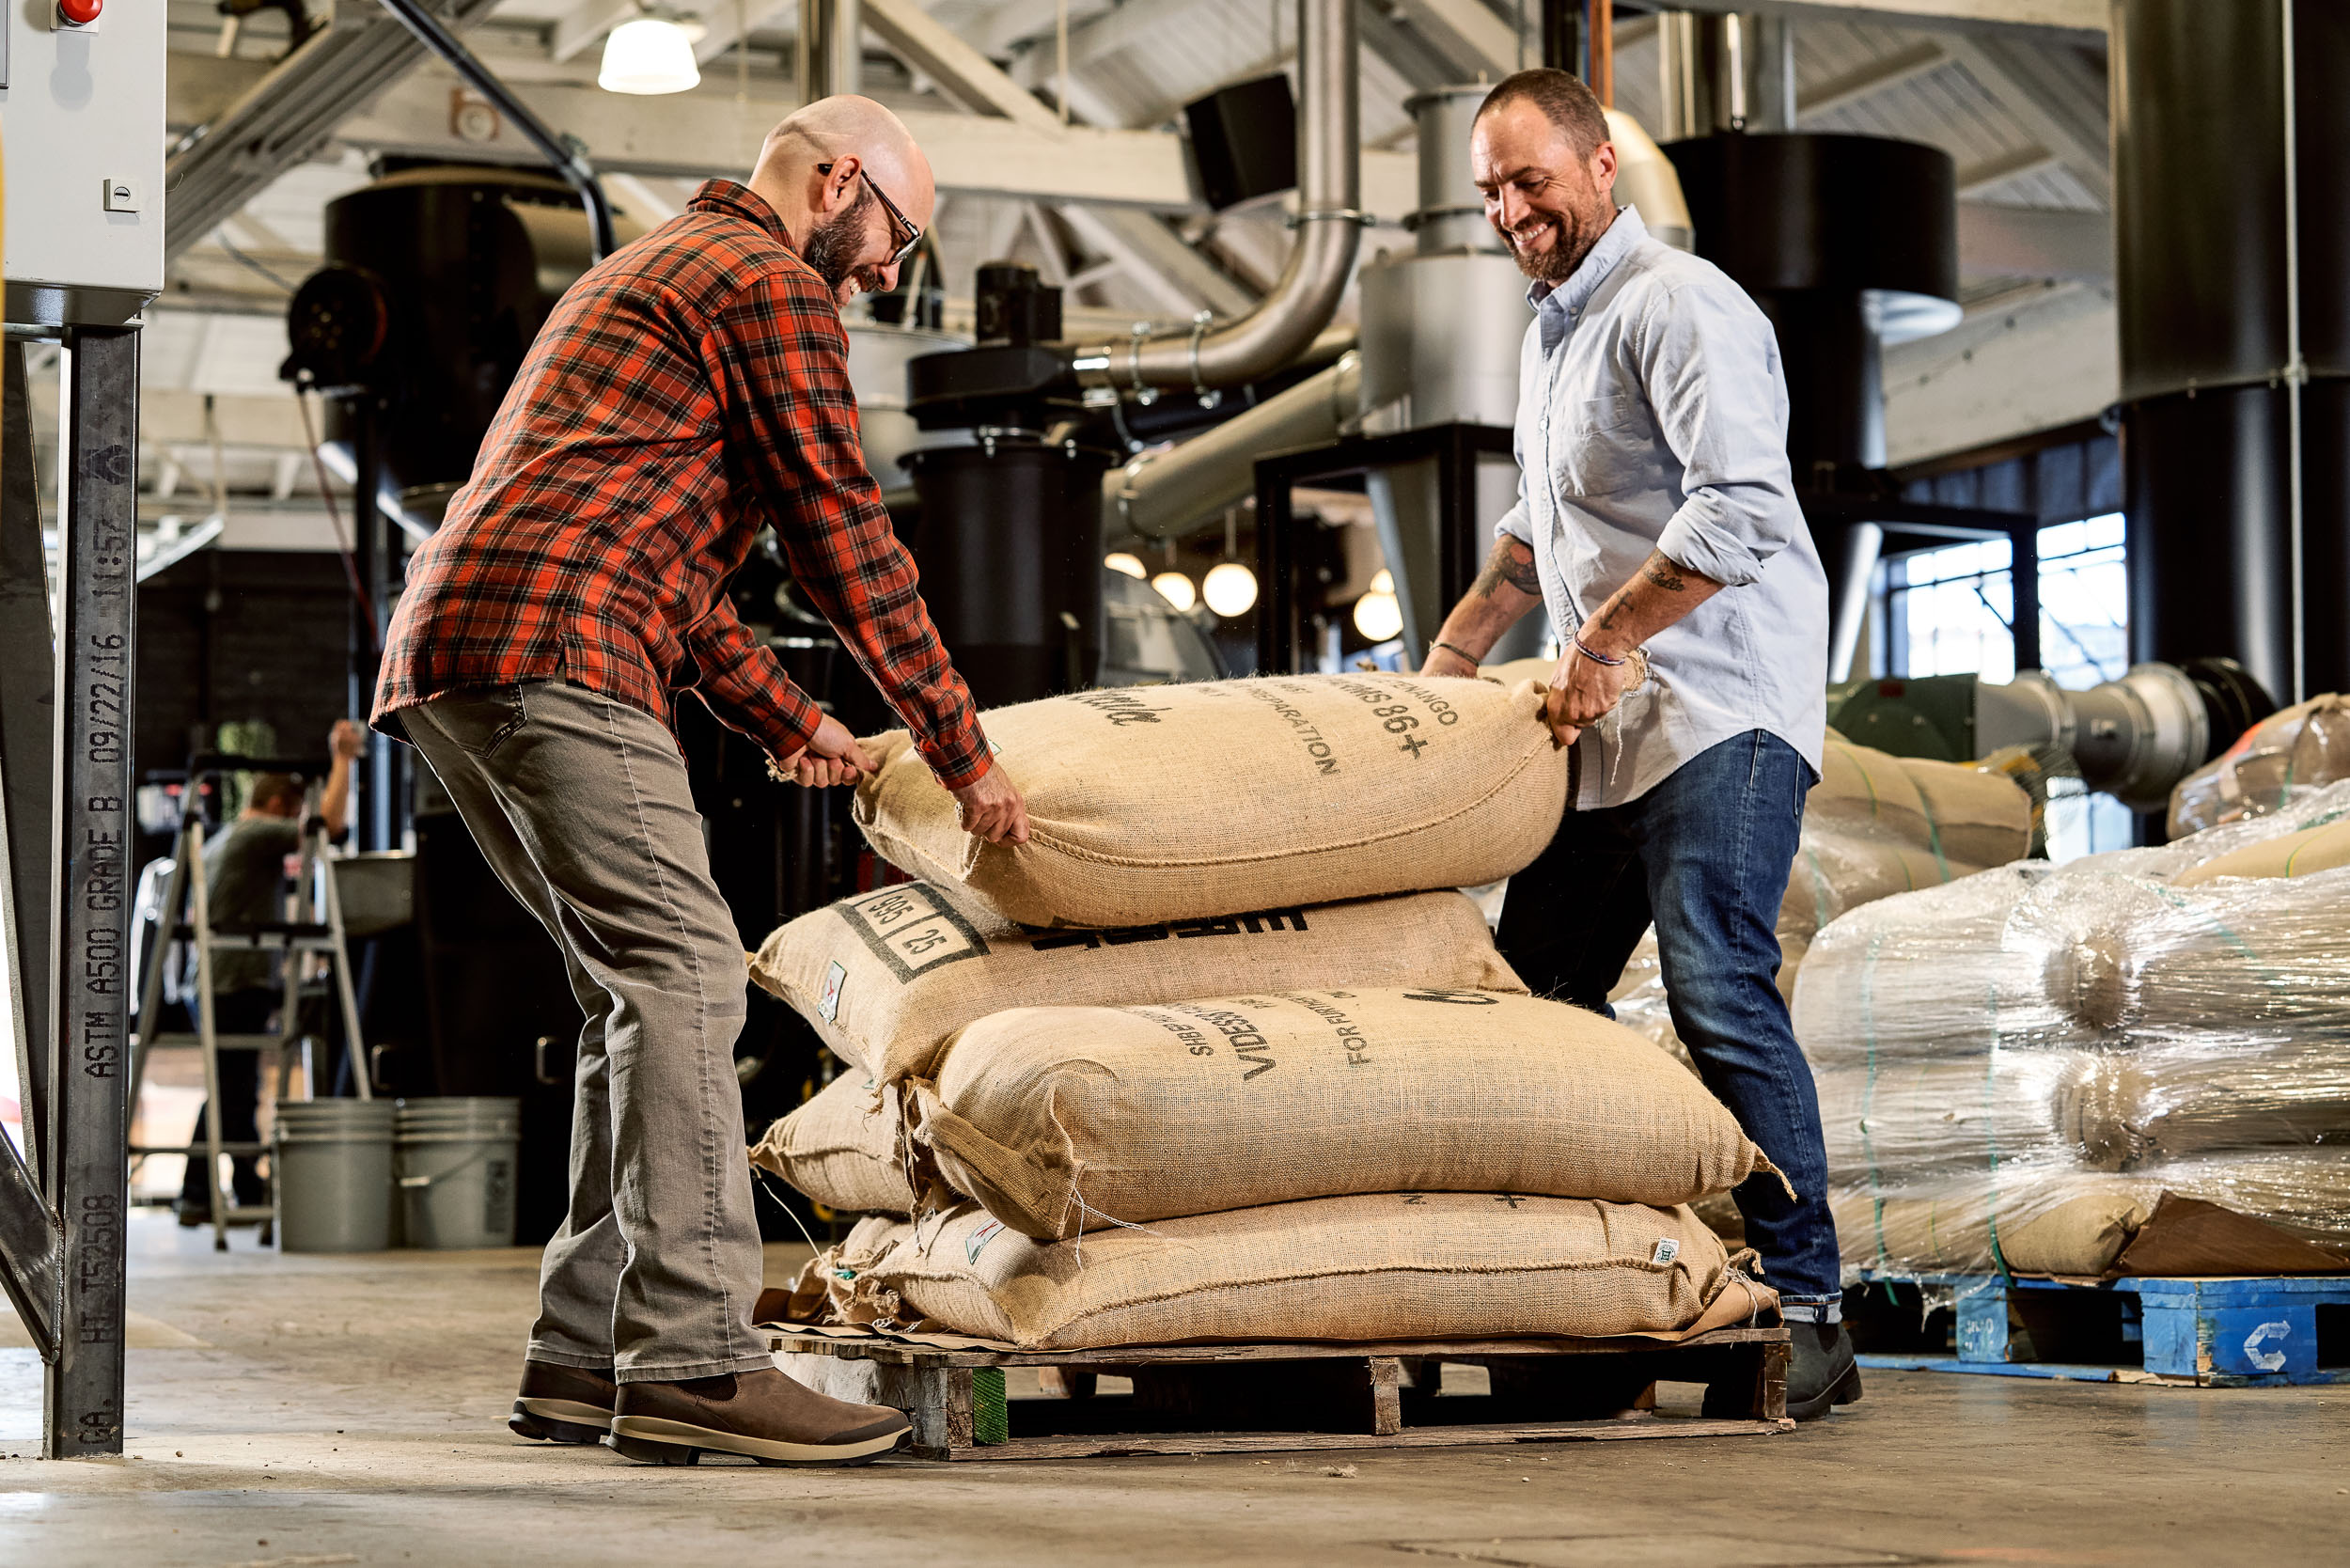 Moving sacks of green coffee at Coava Roasters in Portland, OR while wearing Danner Pub Gardens